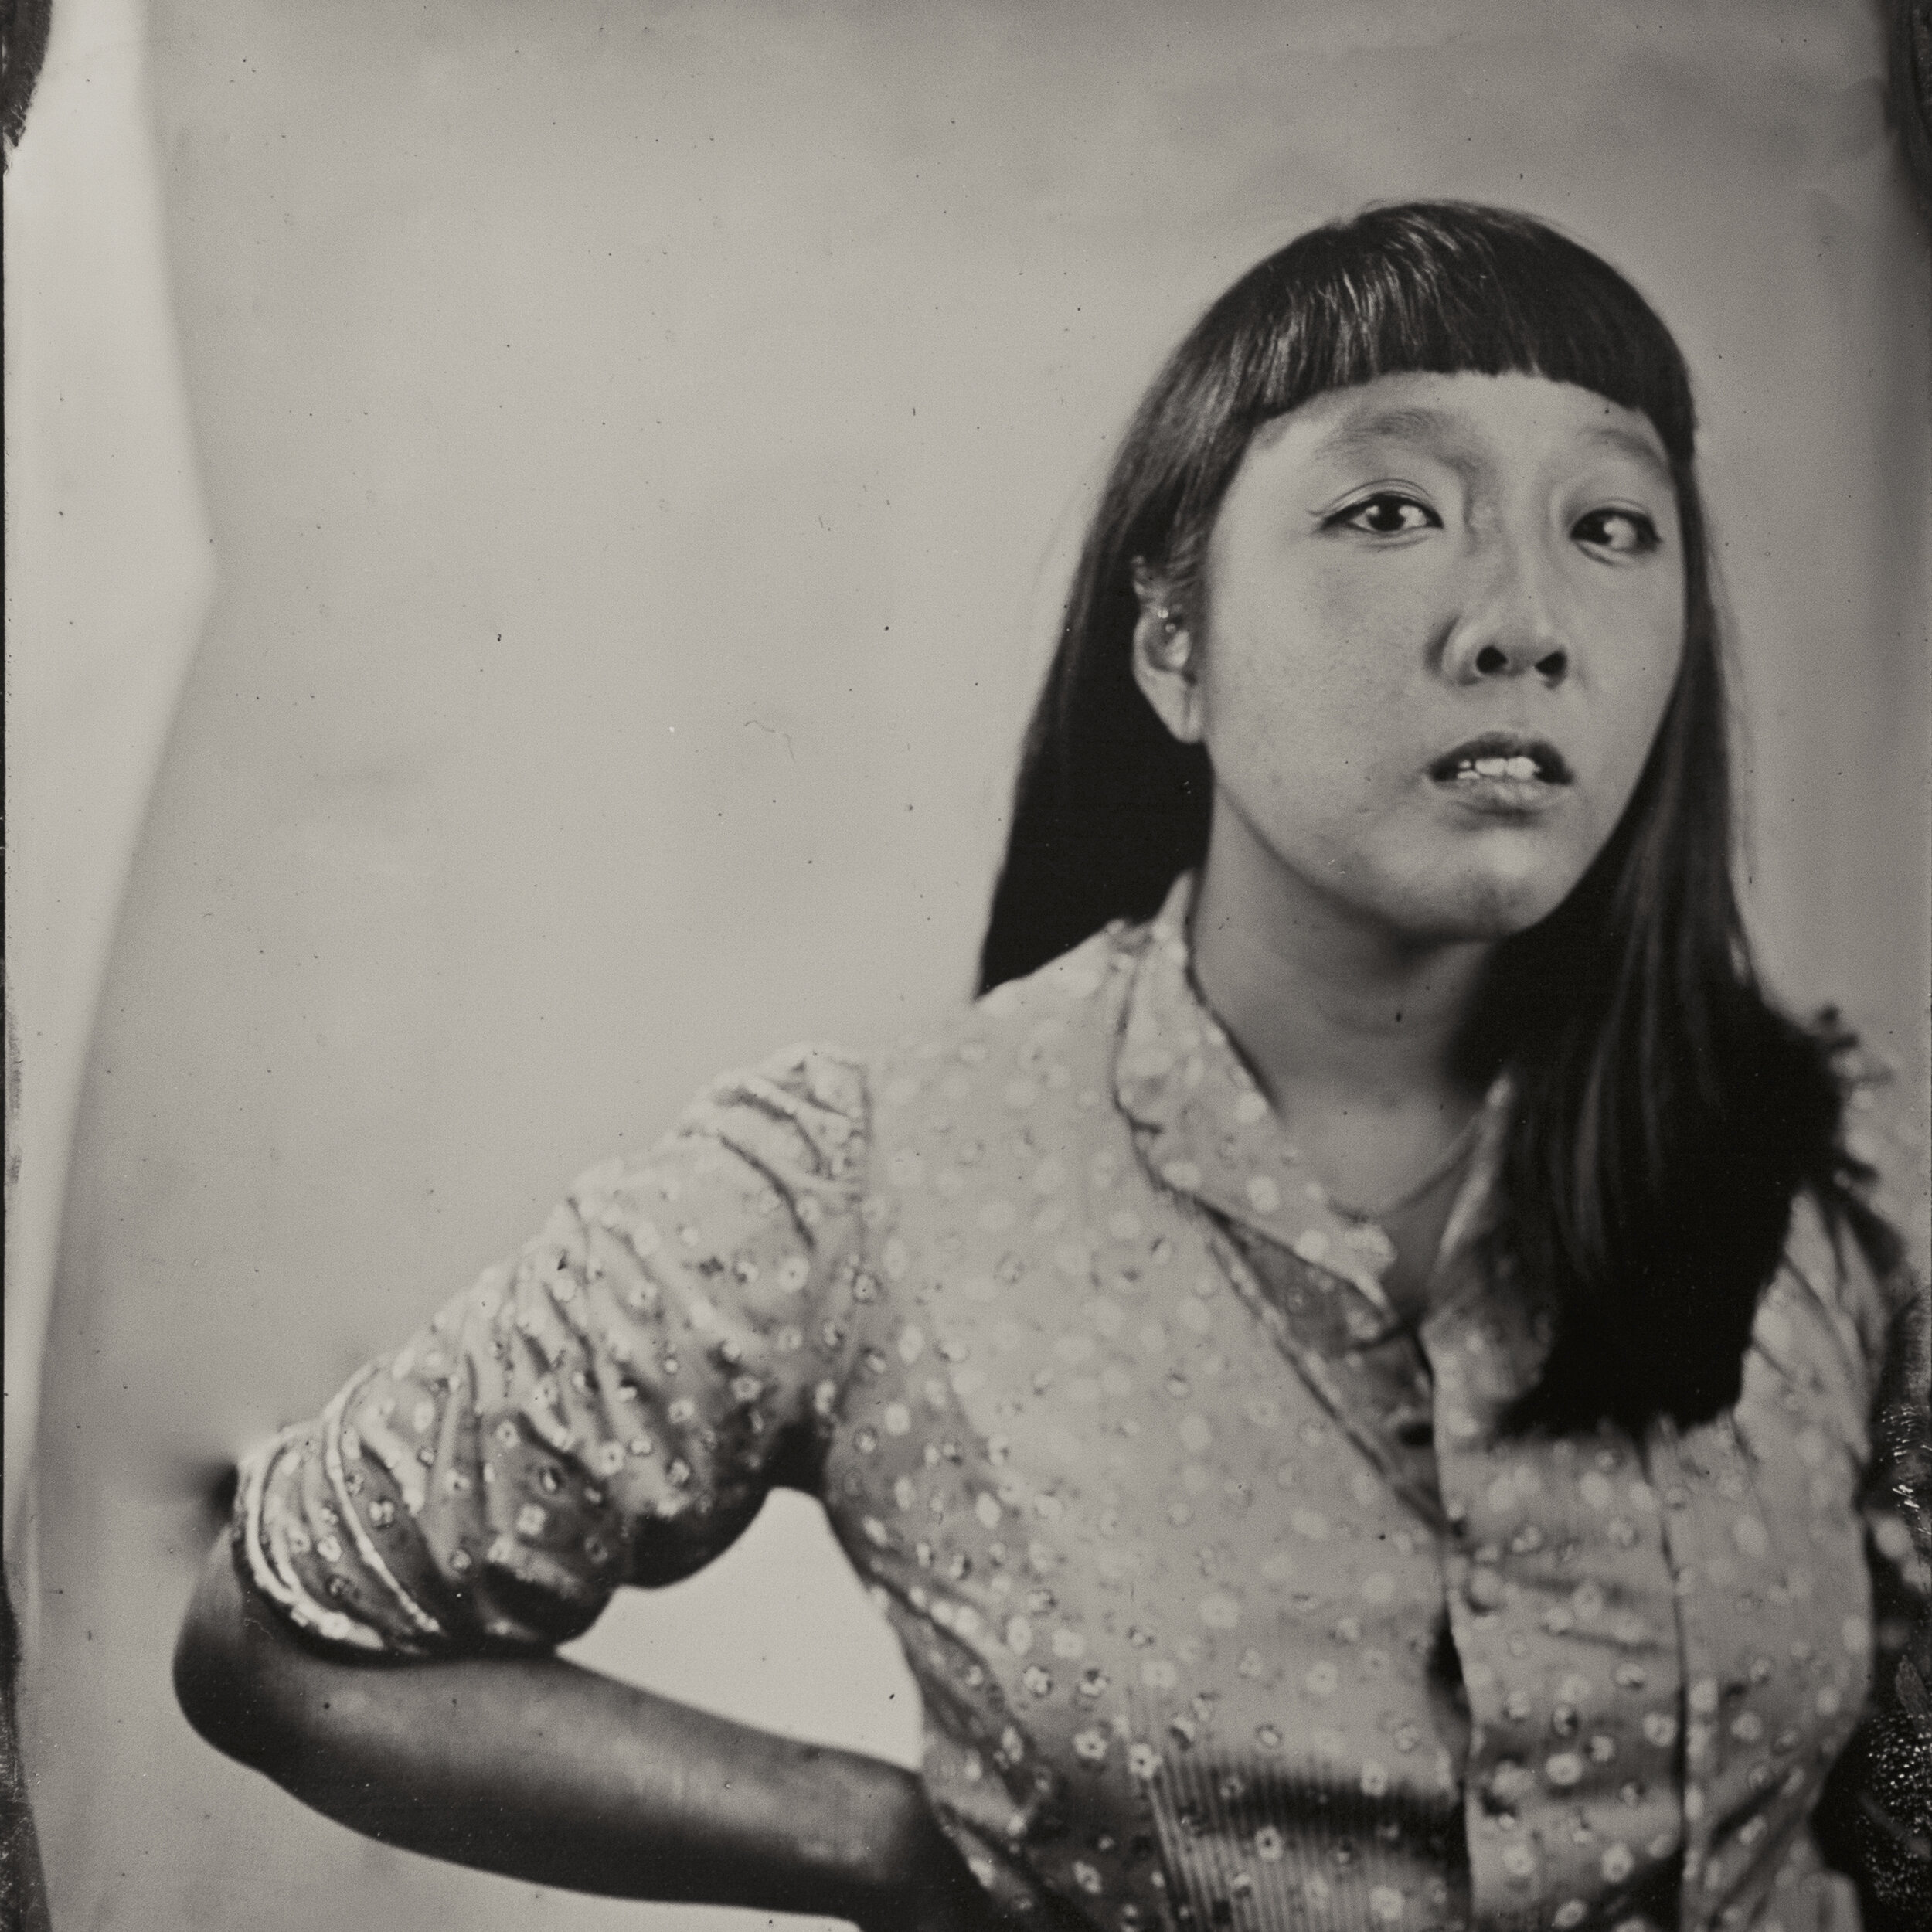 Trisha Low is a poet and performer living in the East Bay. She is the author of  The Compleat Purge  (Kenning Editions, 2013) and  Socialist Realism  (Emily Books/Coffee House Press, 2019).